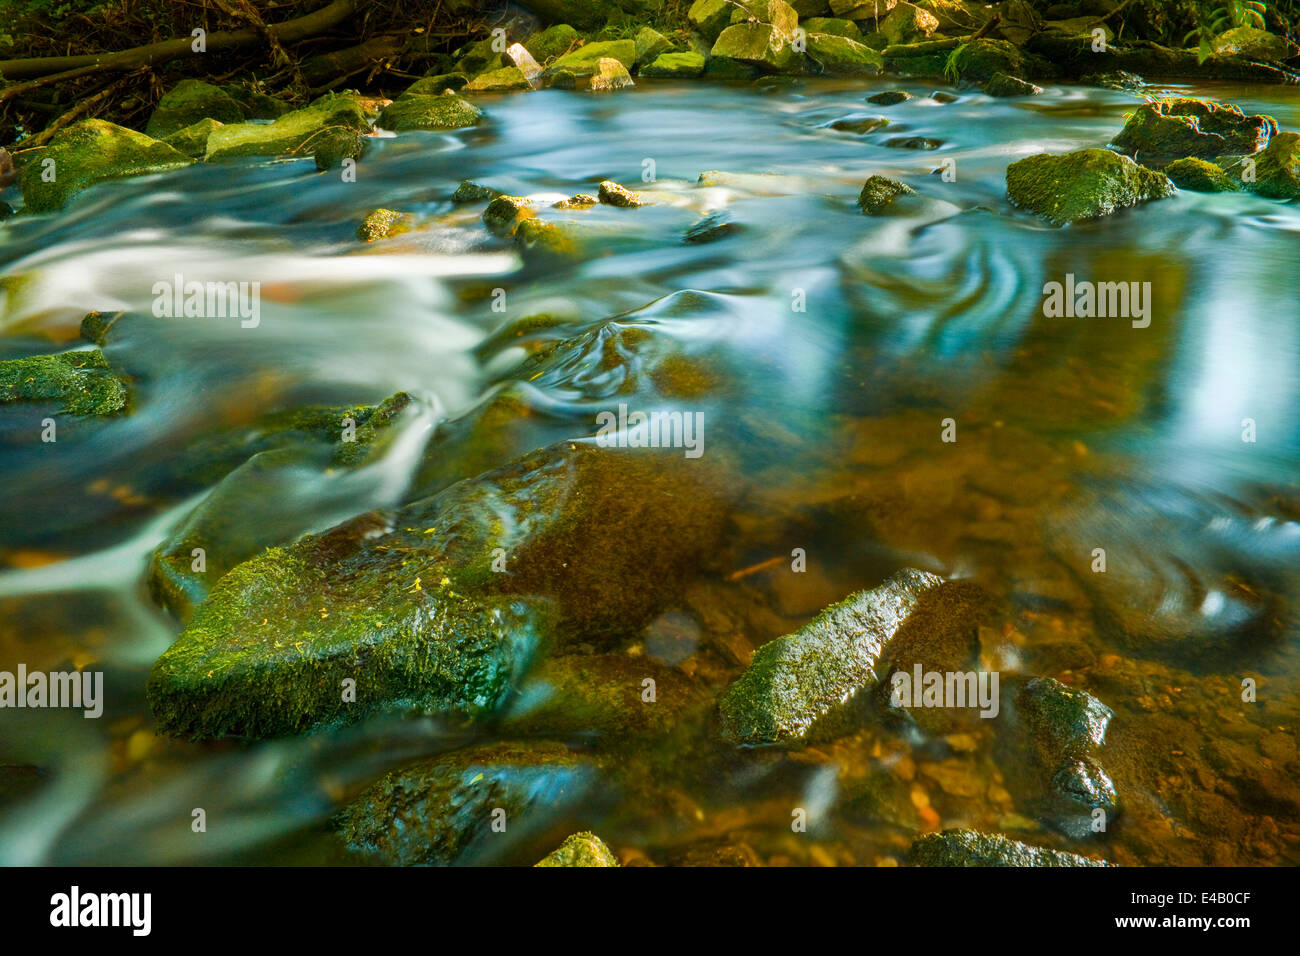 little creek floating around mossy rocks, small waterfall - Stock Image